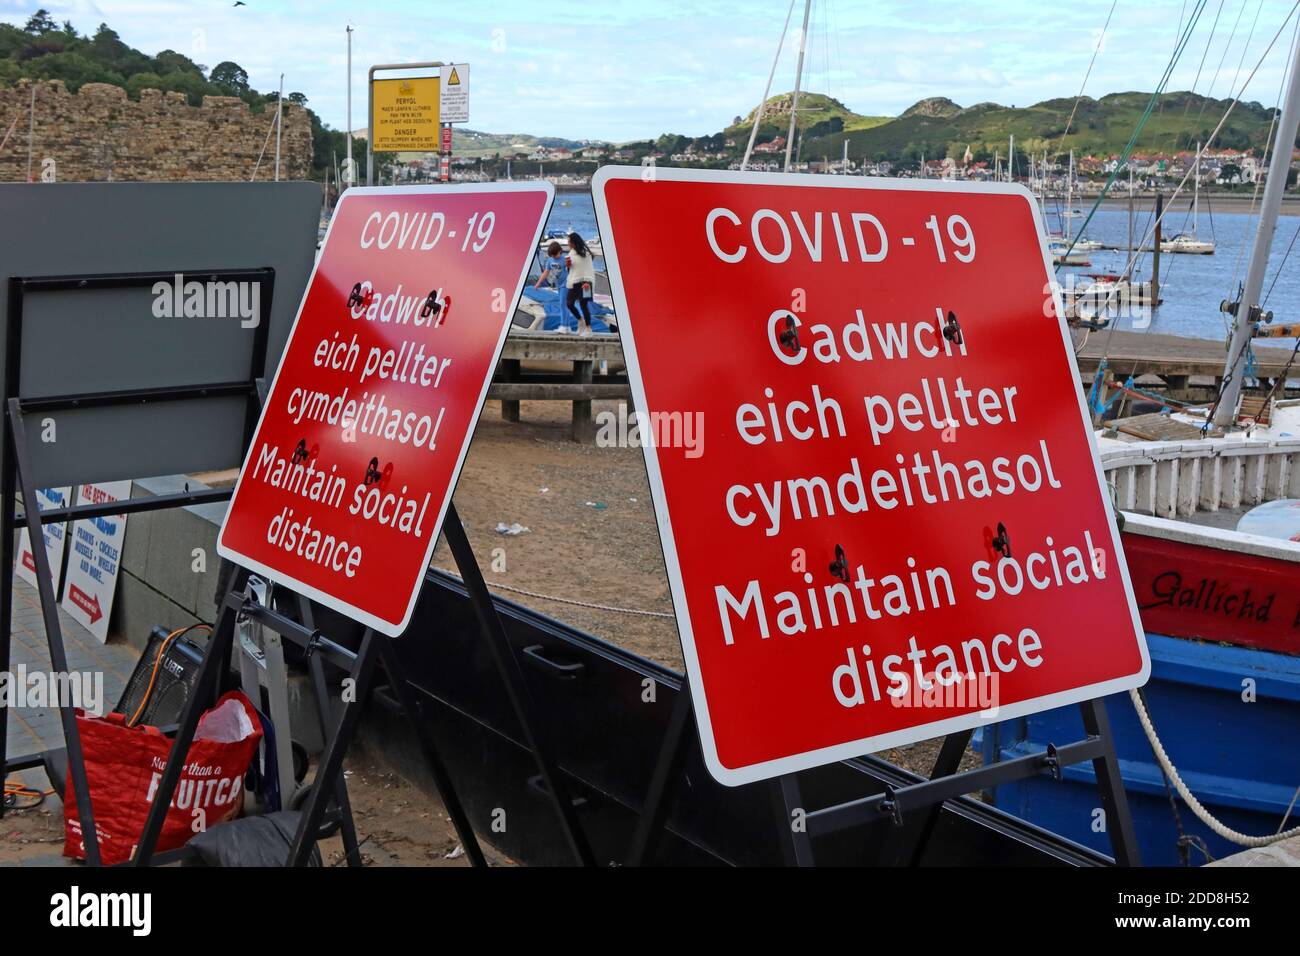 GoTonySmith,Hotpixuk,@Hotpixuk,North Wales,Wales,Welsh,coast,coastal,town,sign,beach,Coronavirus,harbour,Harbor,LL32,safety,staycation,responsibility,social responsibility,Gwynedd,Conway,River Conwy Quay,Welsh Government,advice,signage,guidelines,rule,rules,Keep your distance,two metres,2 metre,red sign